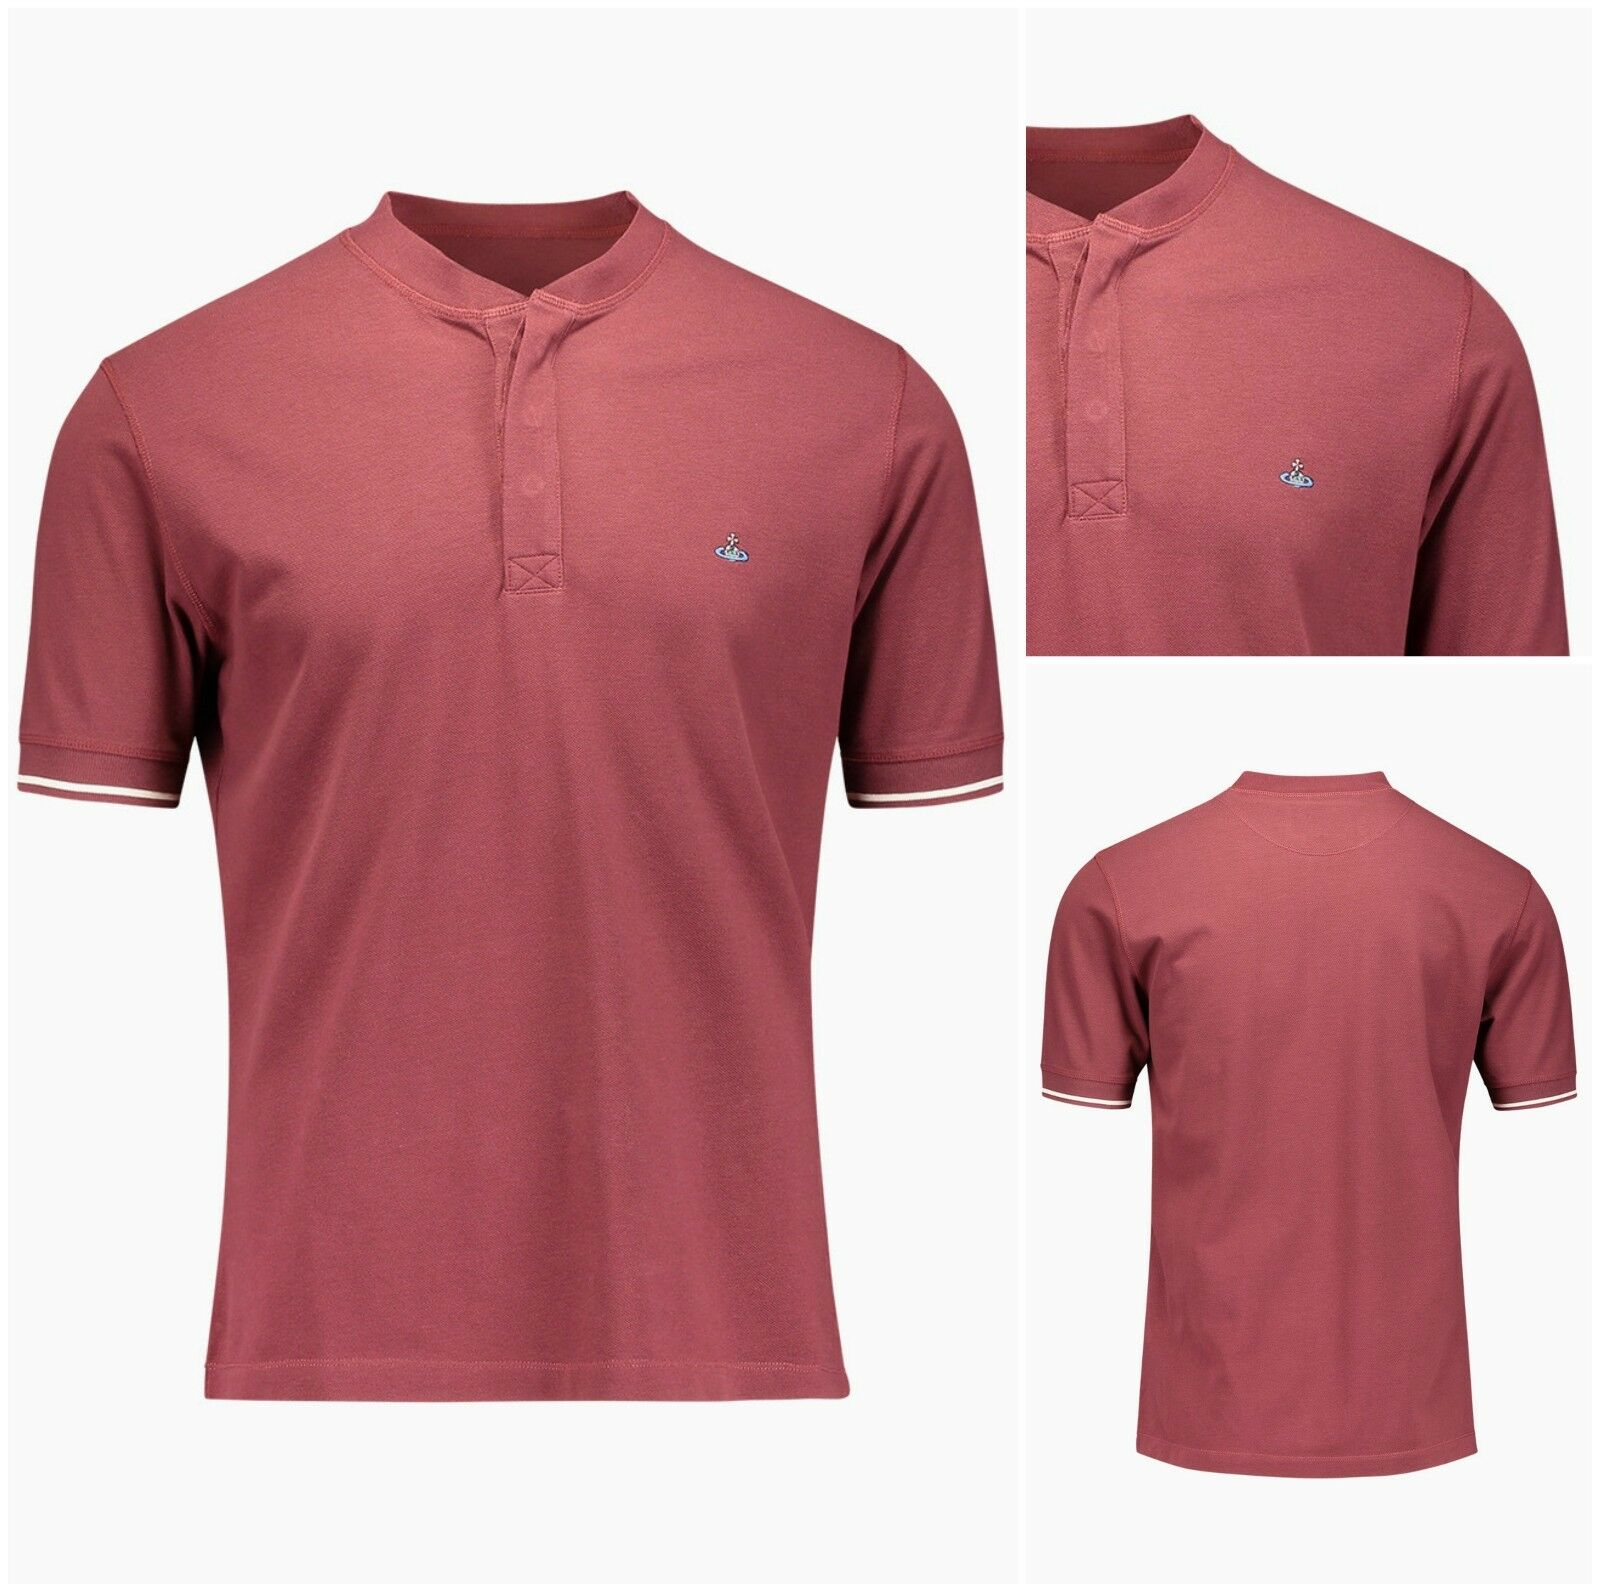 NWT 100% AUTHENTIC VIVIENNE WESTWOOD BURGUNDY FITTED HENLEY POLO SHIRT. XL